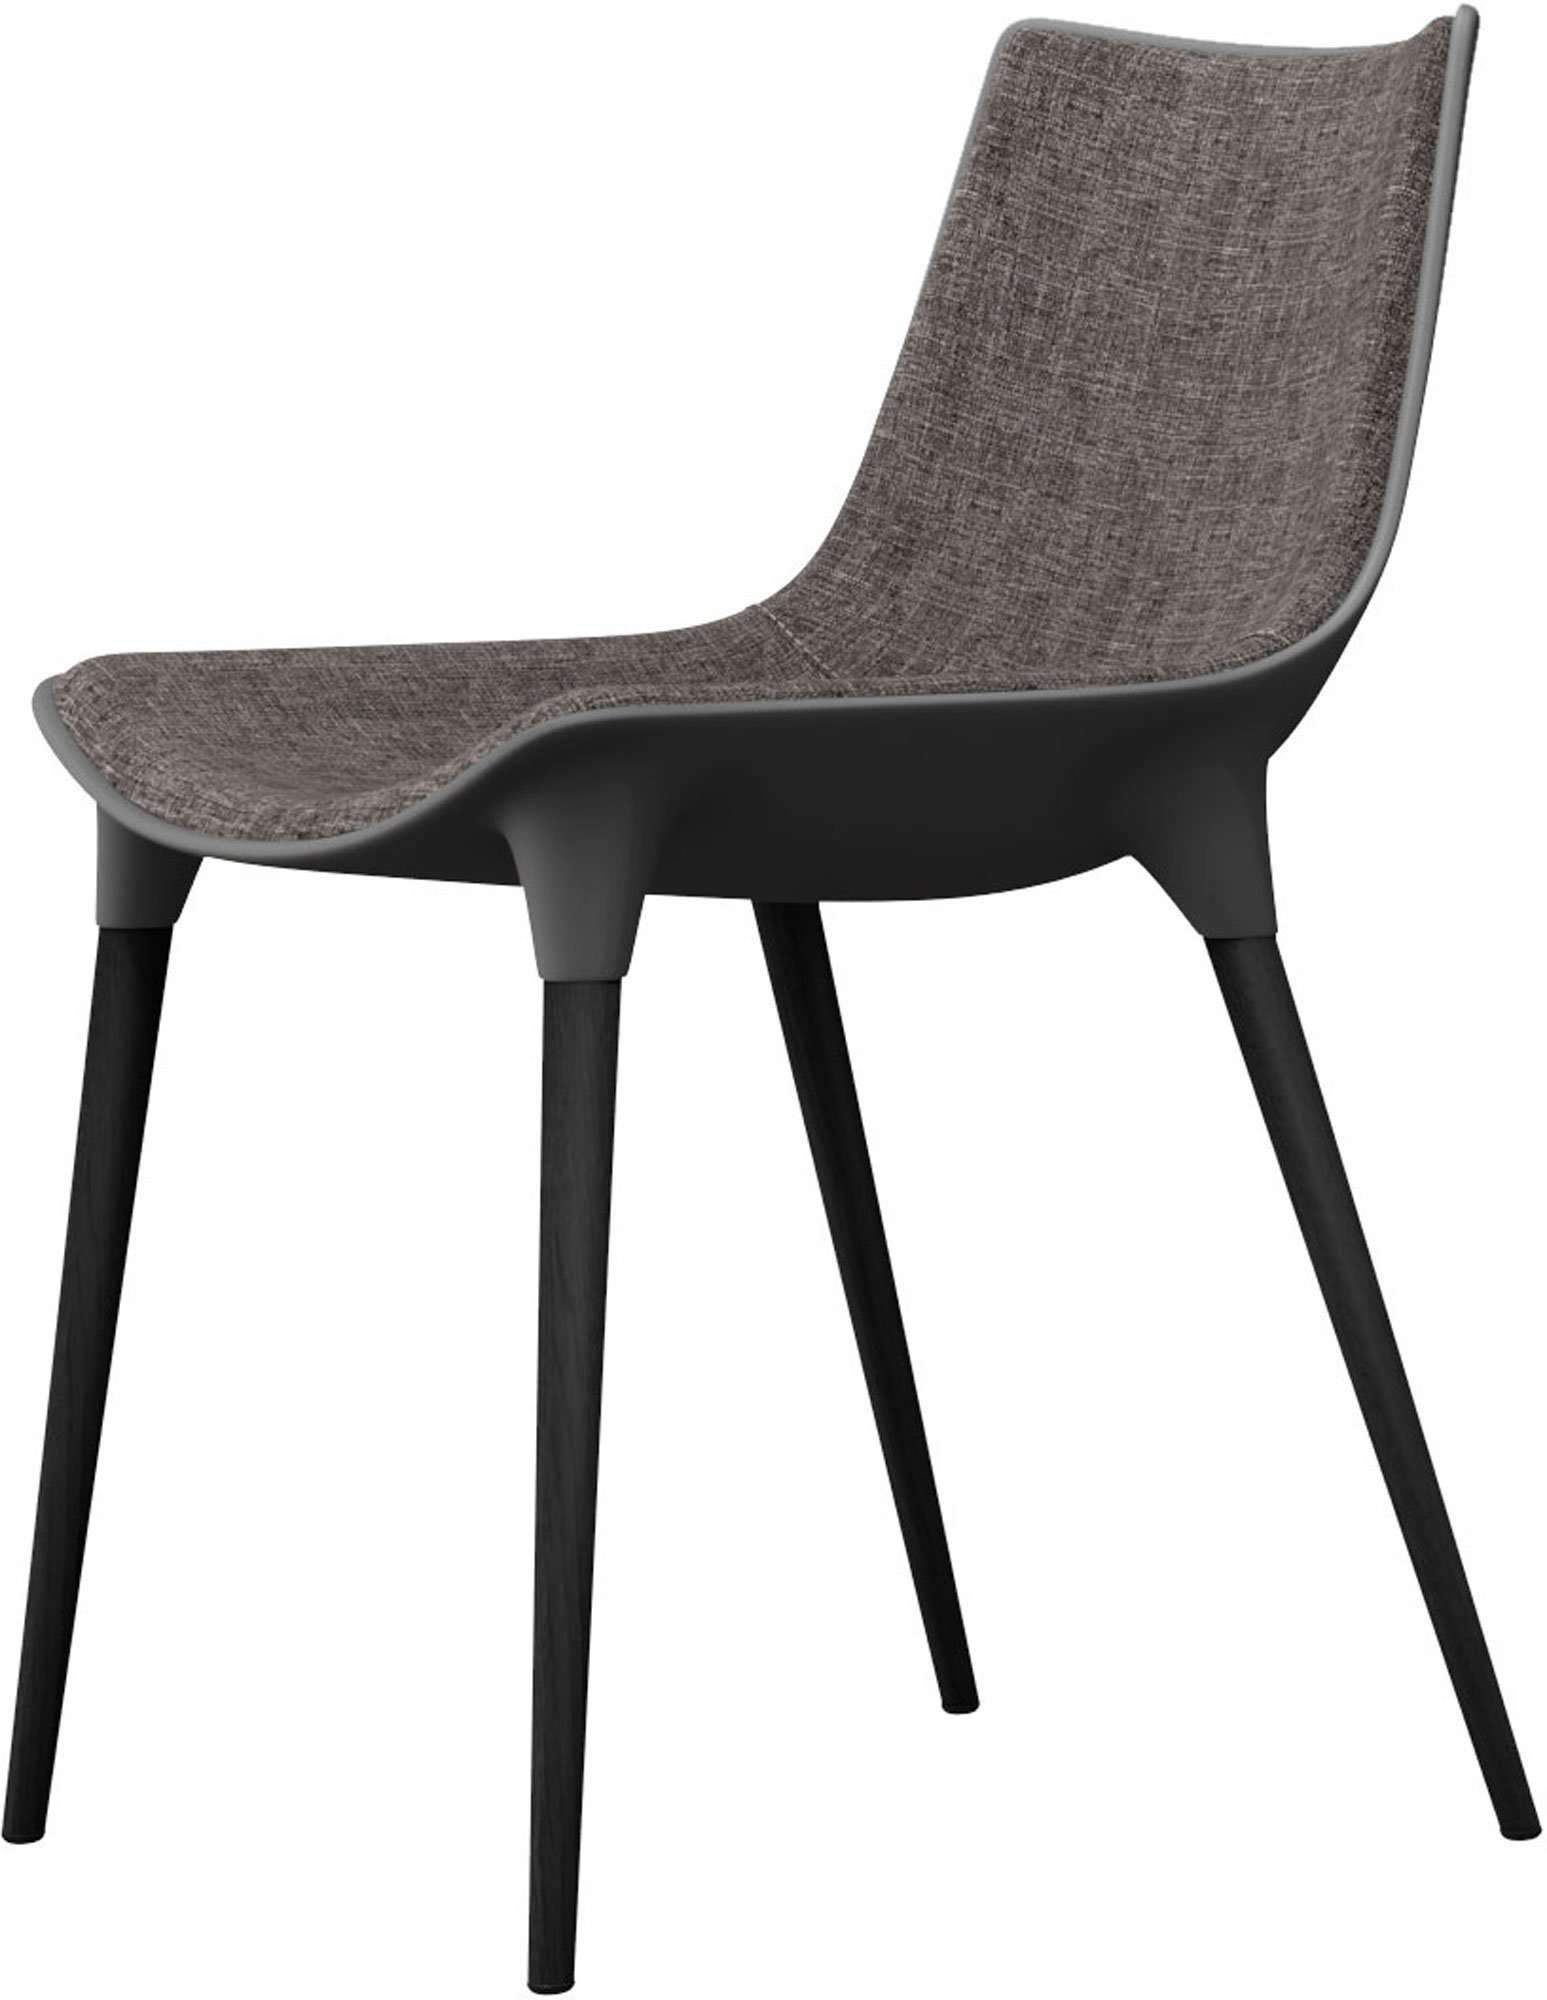 Langham Dining Chair Fabric - Charcoal | Dining chairs ...